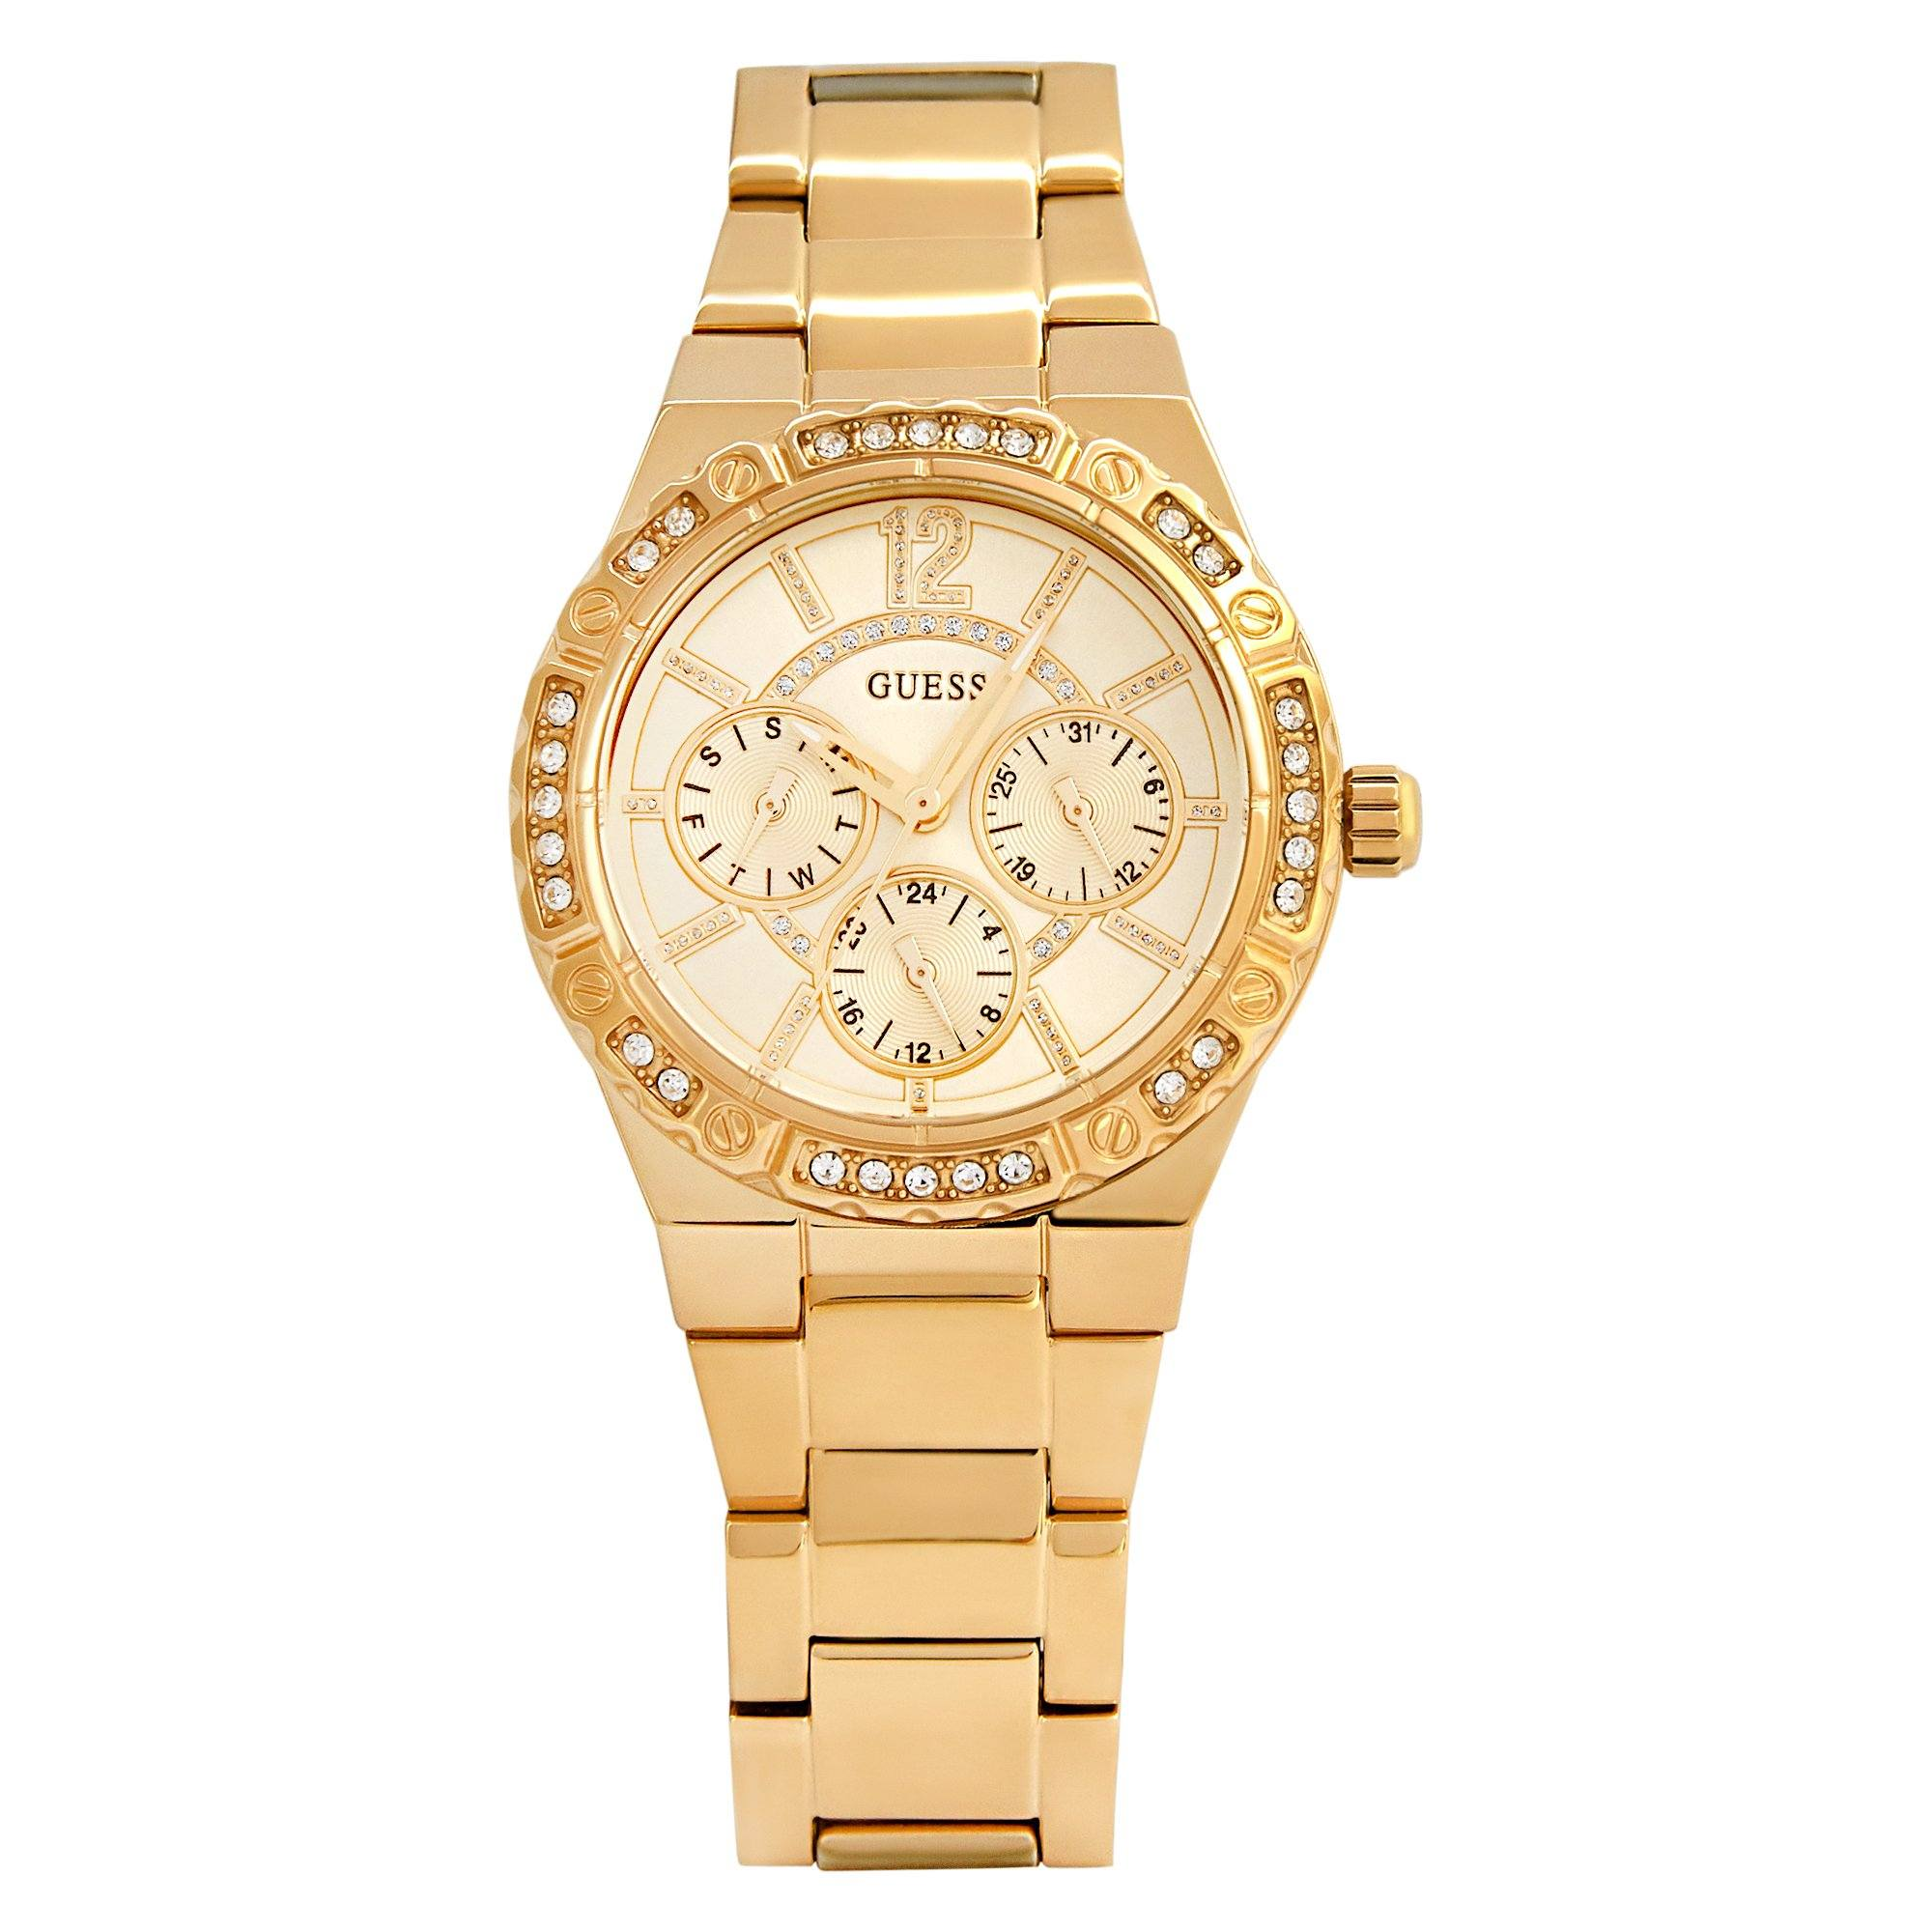 Guess Women's Envy Gold/Gold Bracelet Watch Watches Isbister & Co Wholesale